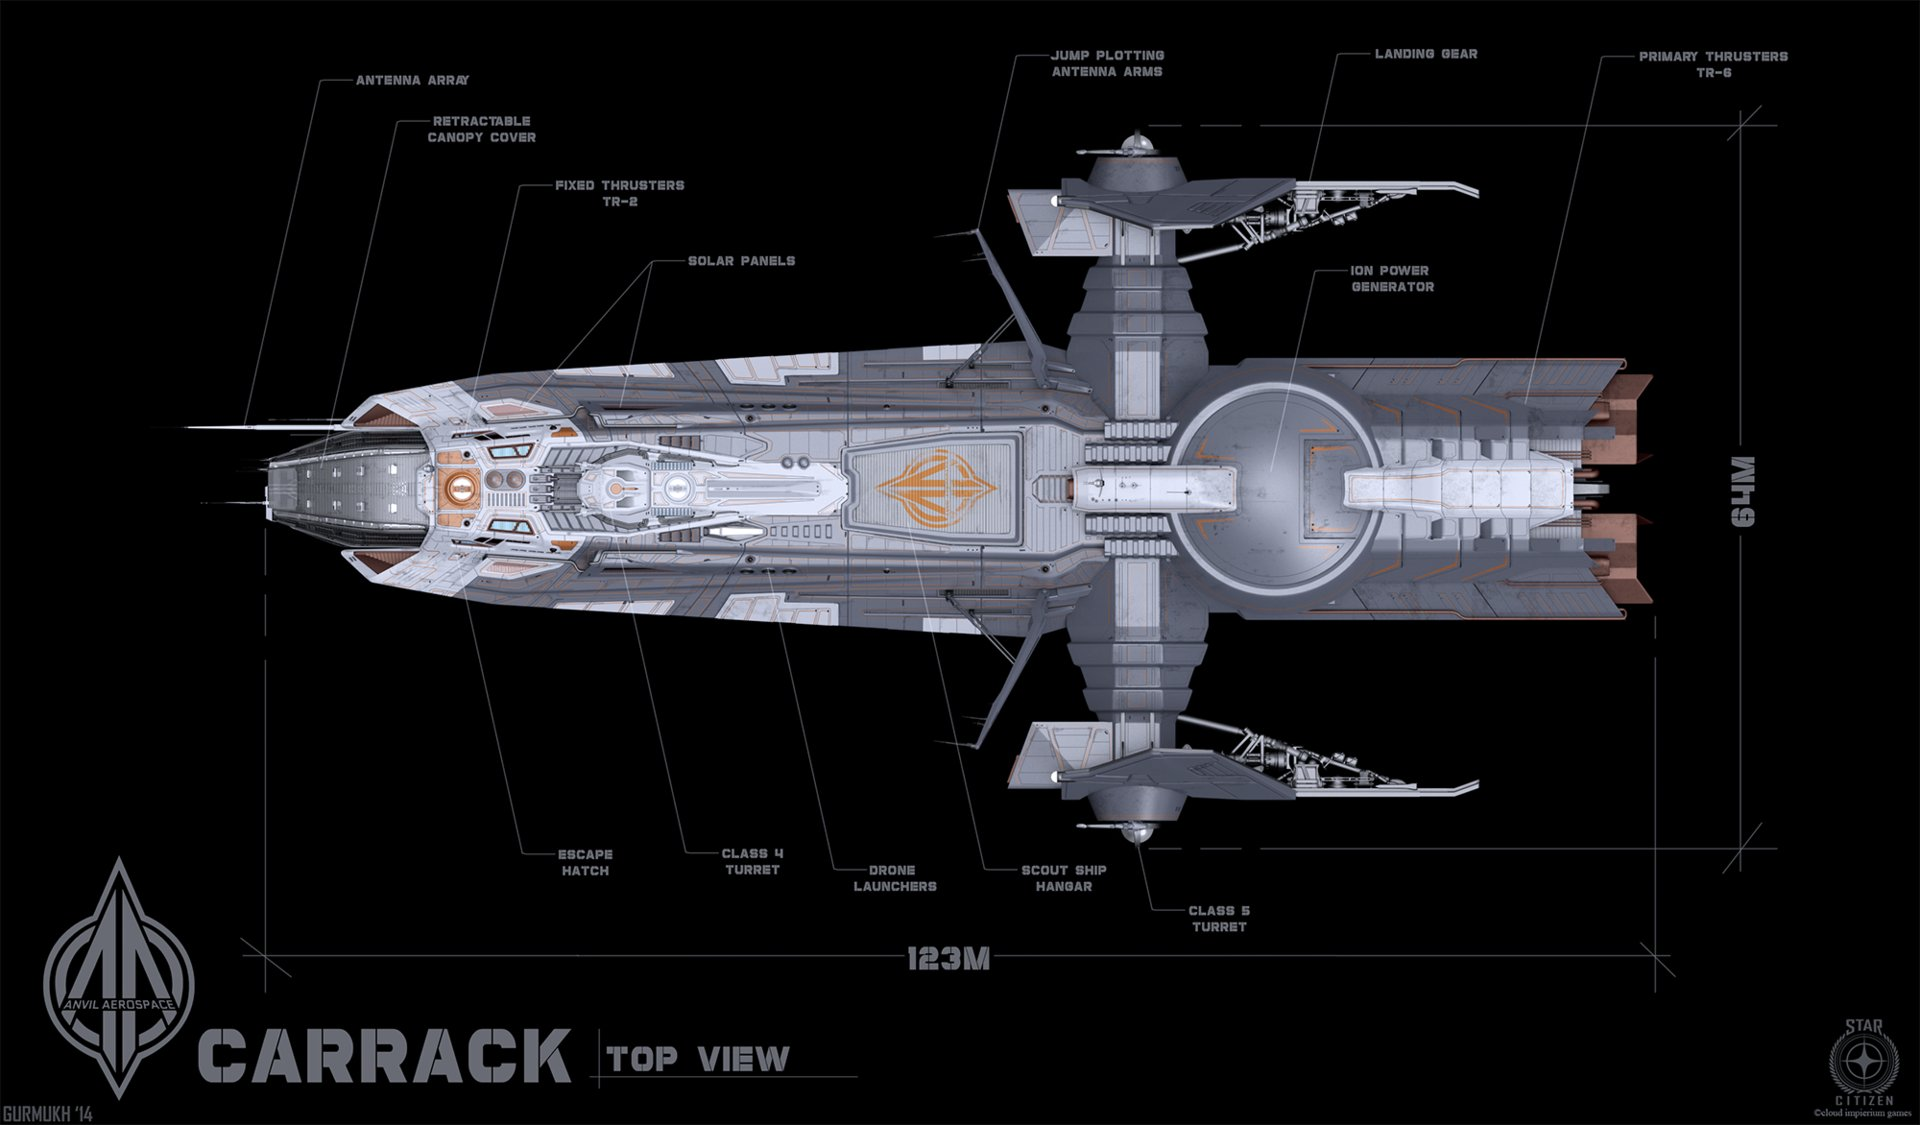 Gurmukh bhasin carrack top view final gurmukh half b